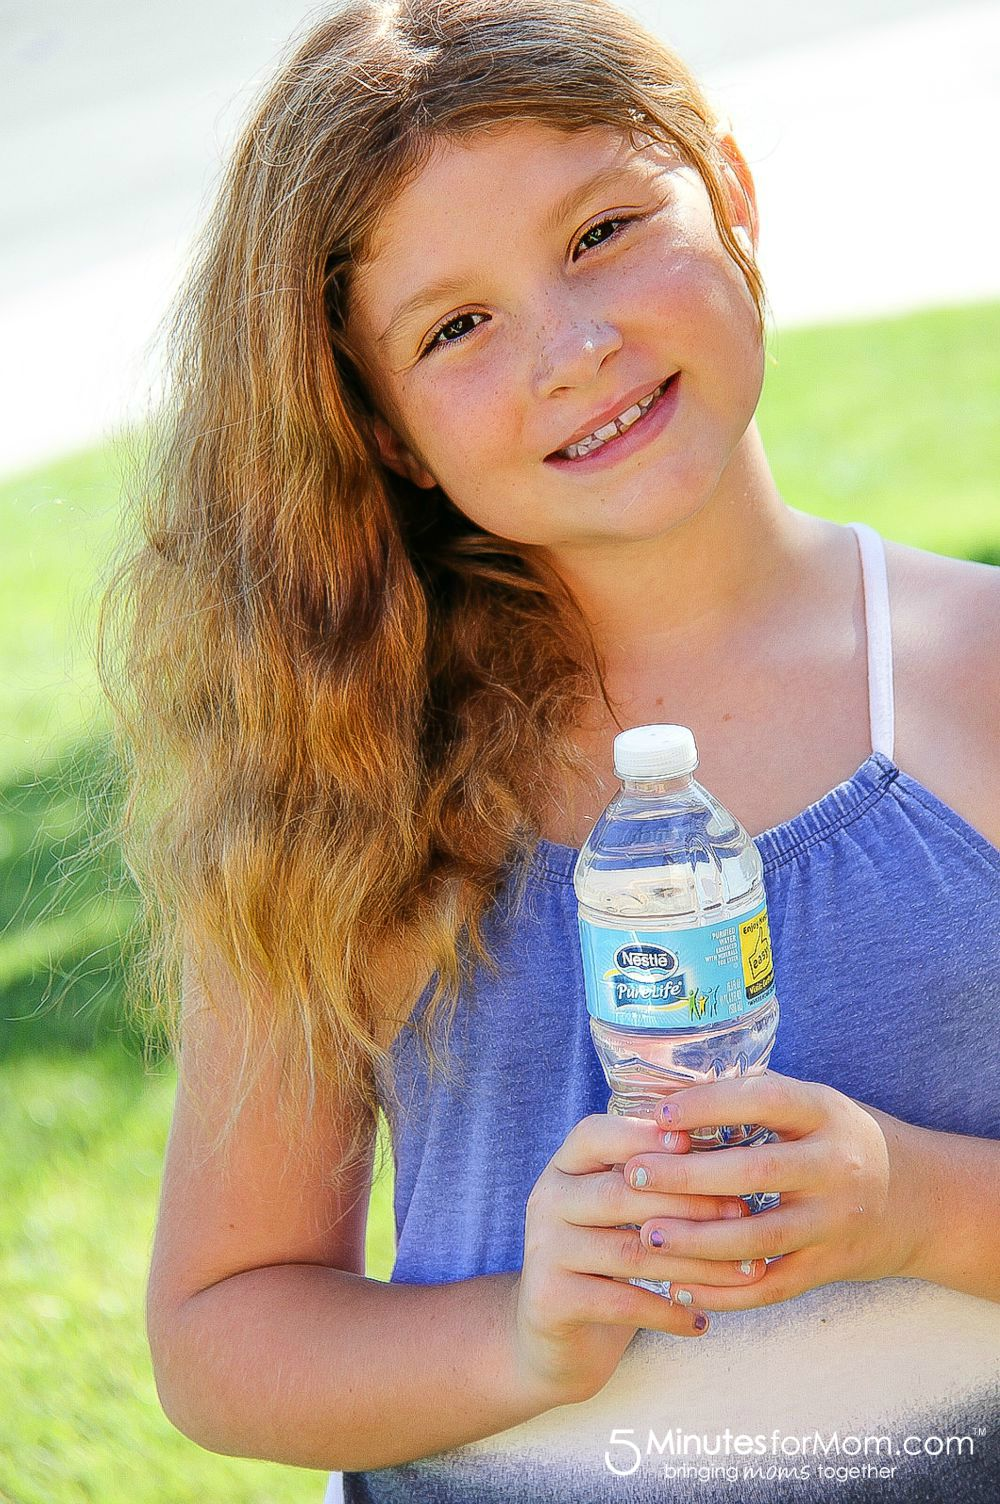 'The Ripple Effect' Campaign To Encourage Children Towards Healthy Hydration Habits